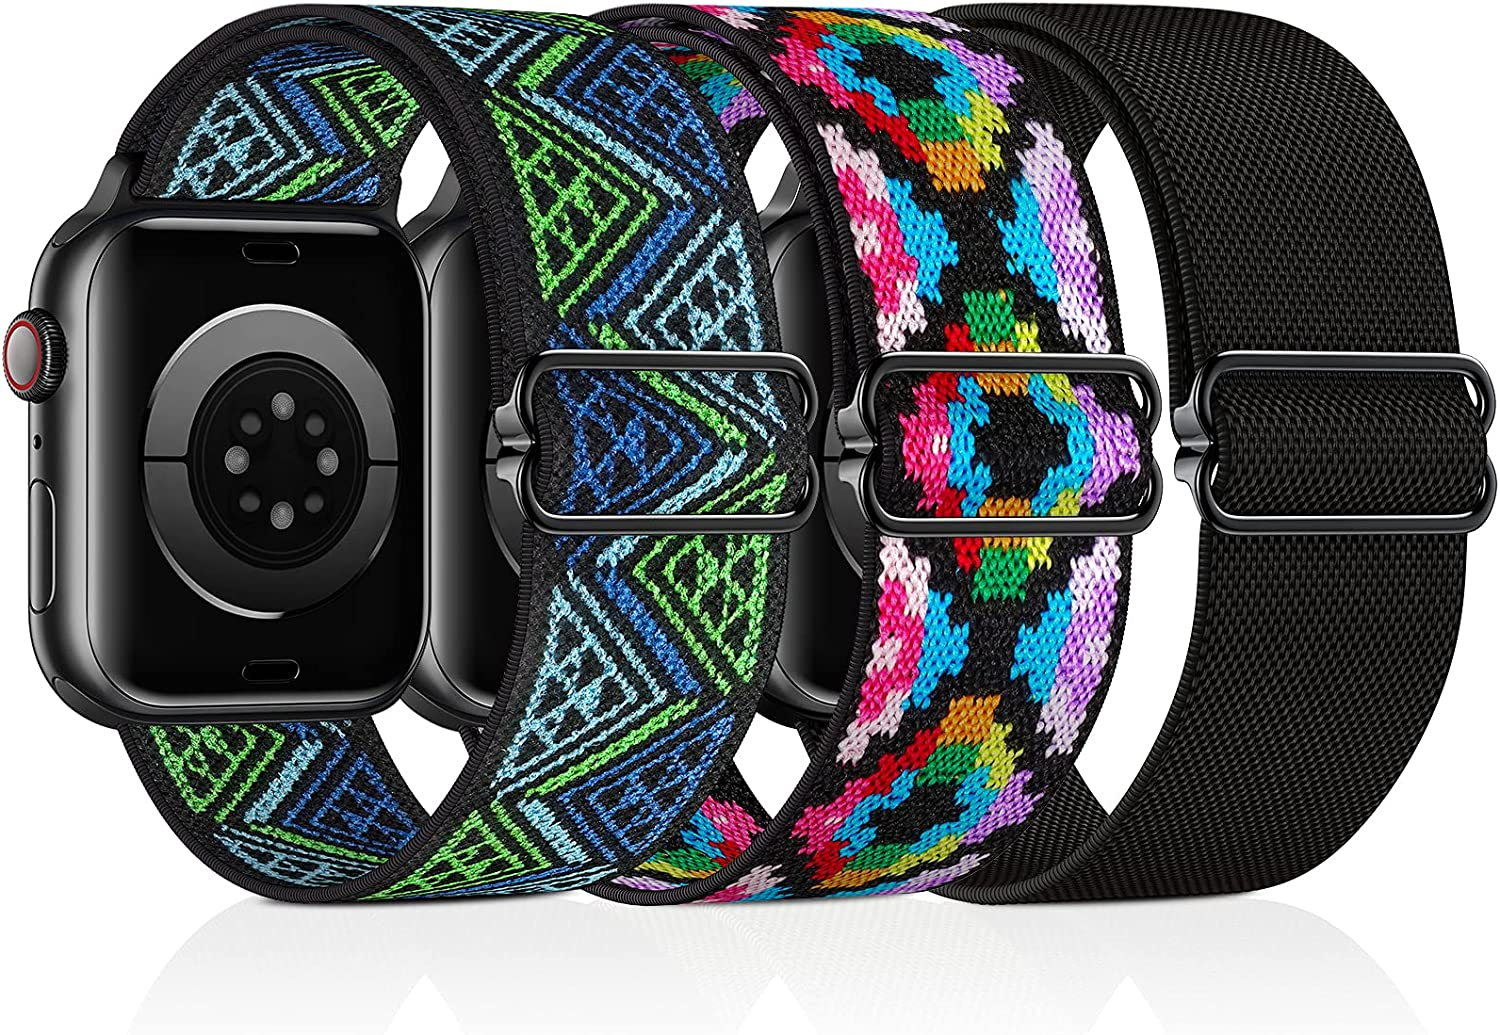 ALTOUMAN Stretchy Nylon Solo Loop Bands Compatible with Apple Watch 38mm 40mm 42mm 44mm, Adjustable Braided Sport Elastic Straps Women Men Wristbands Compatible with iWatch Series 6/5/4/3/2/1 SE, 3 Packs